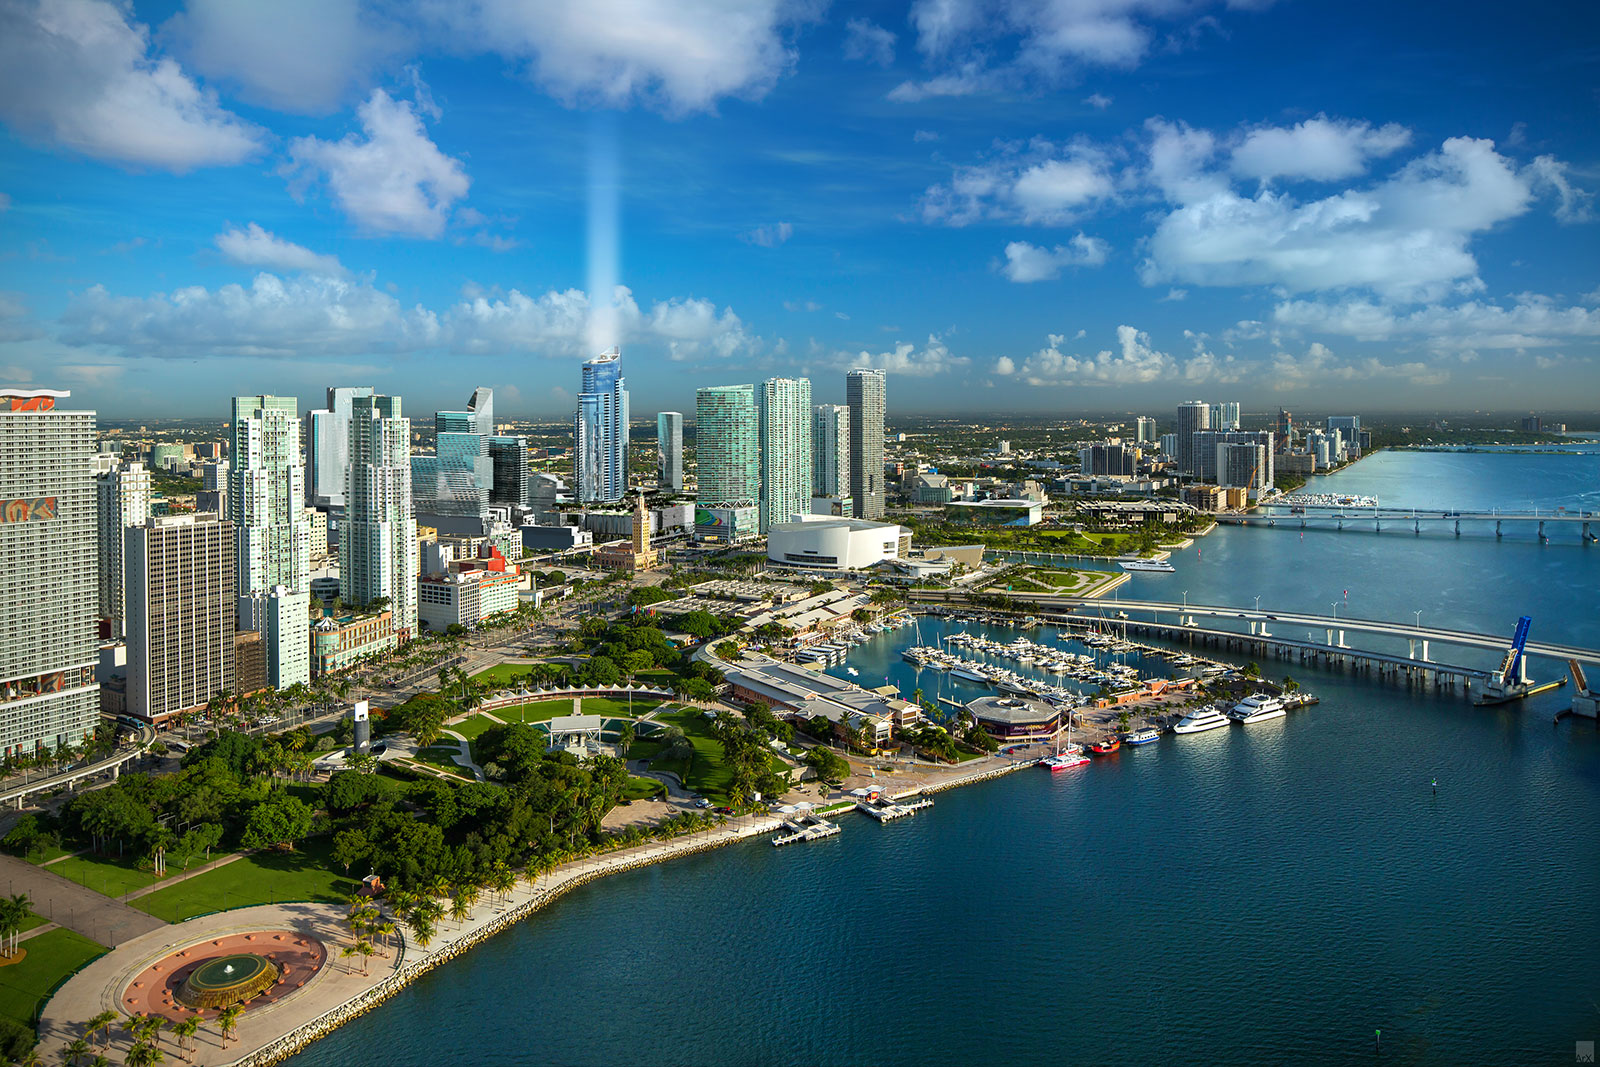 Artist renderings of the Paramount Miami Worldcenter,a new residential complex development due for completion by 2018